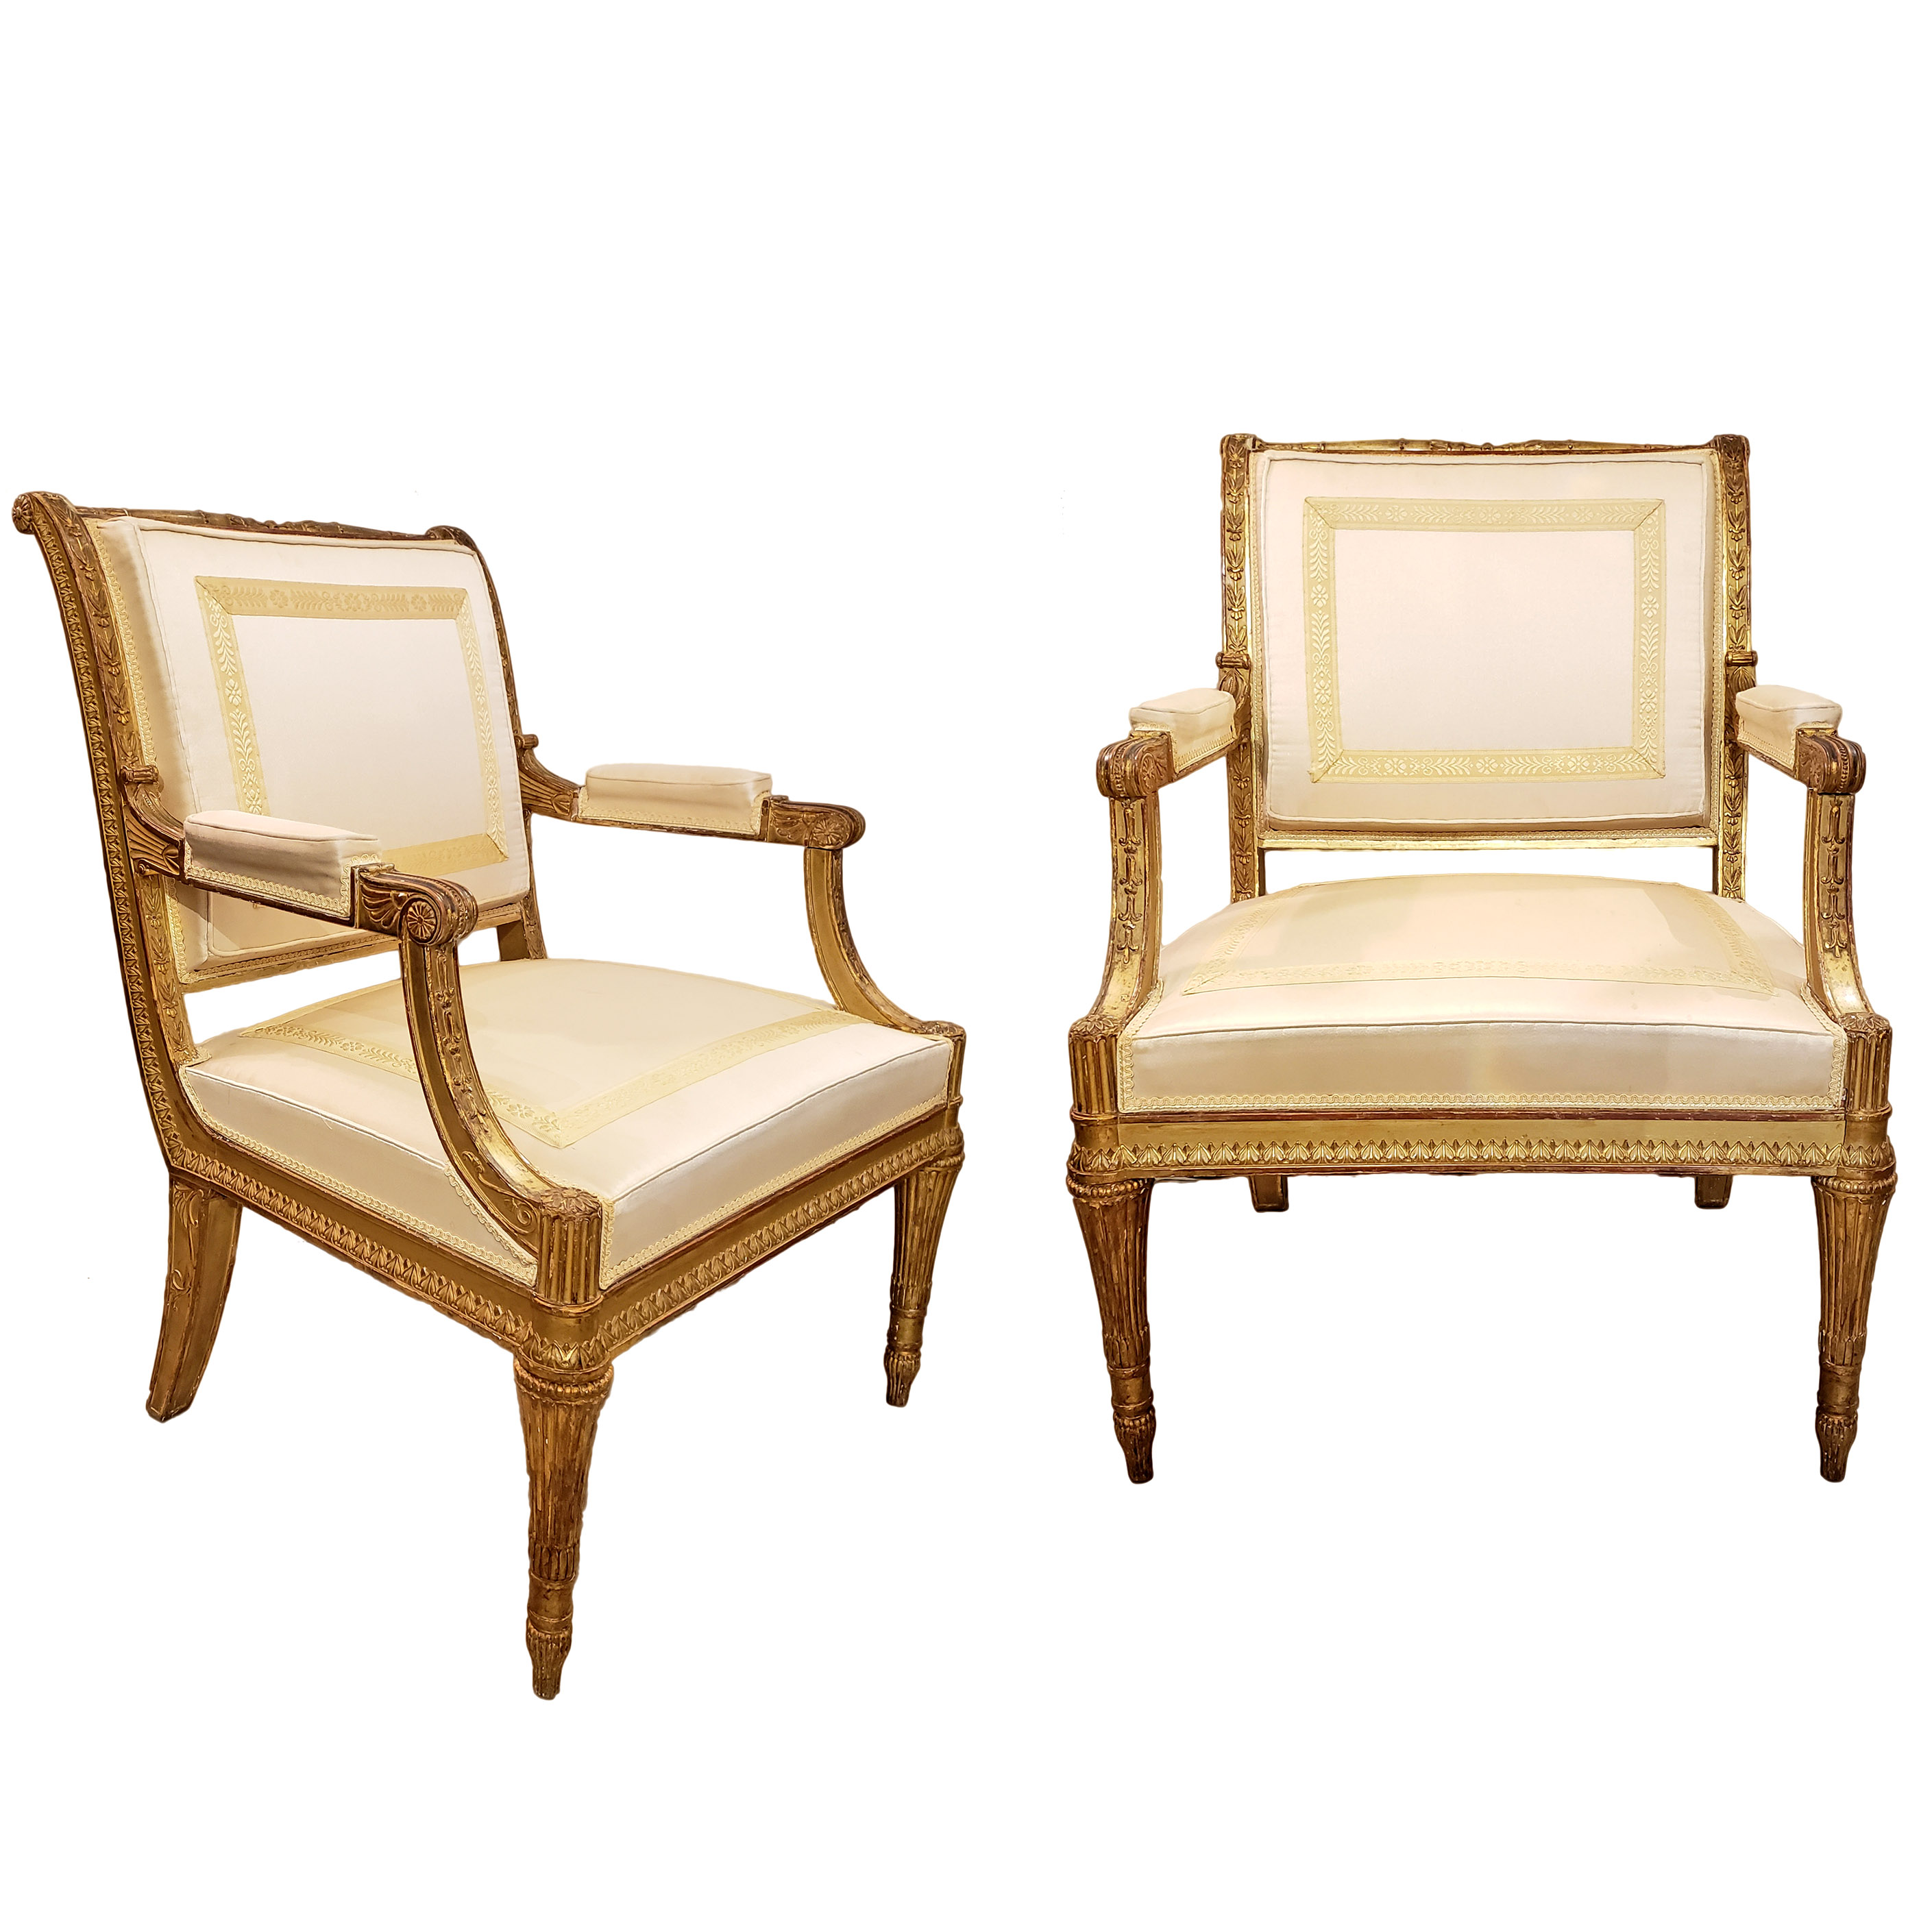 Pair Of Italian Louis XVI Neoclassical Painted And Gilded